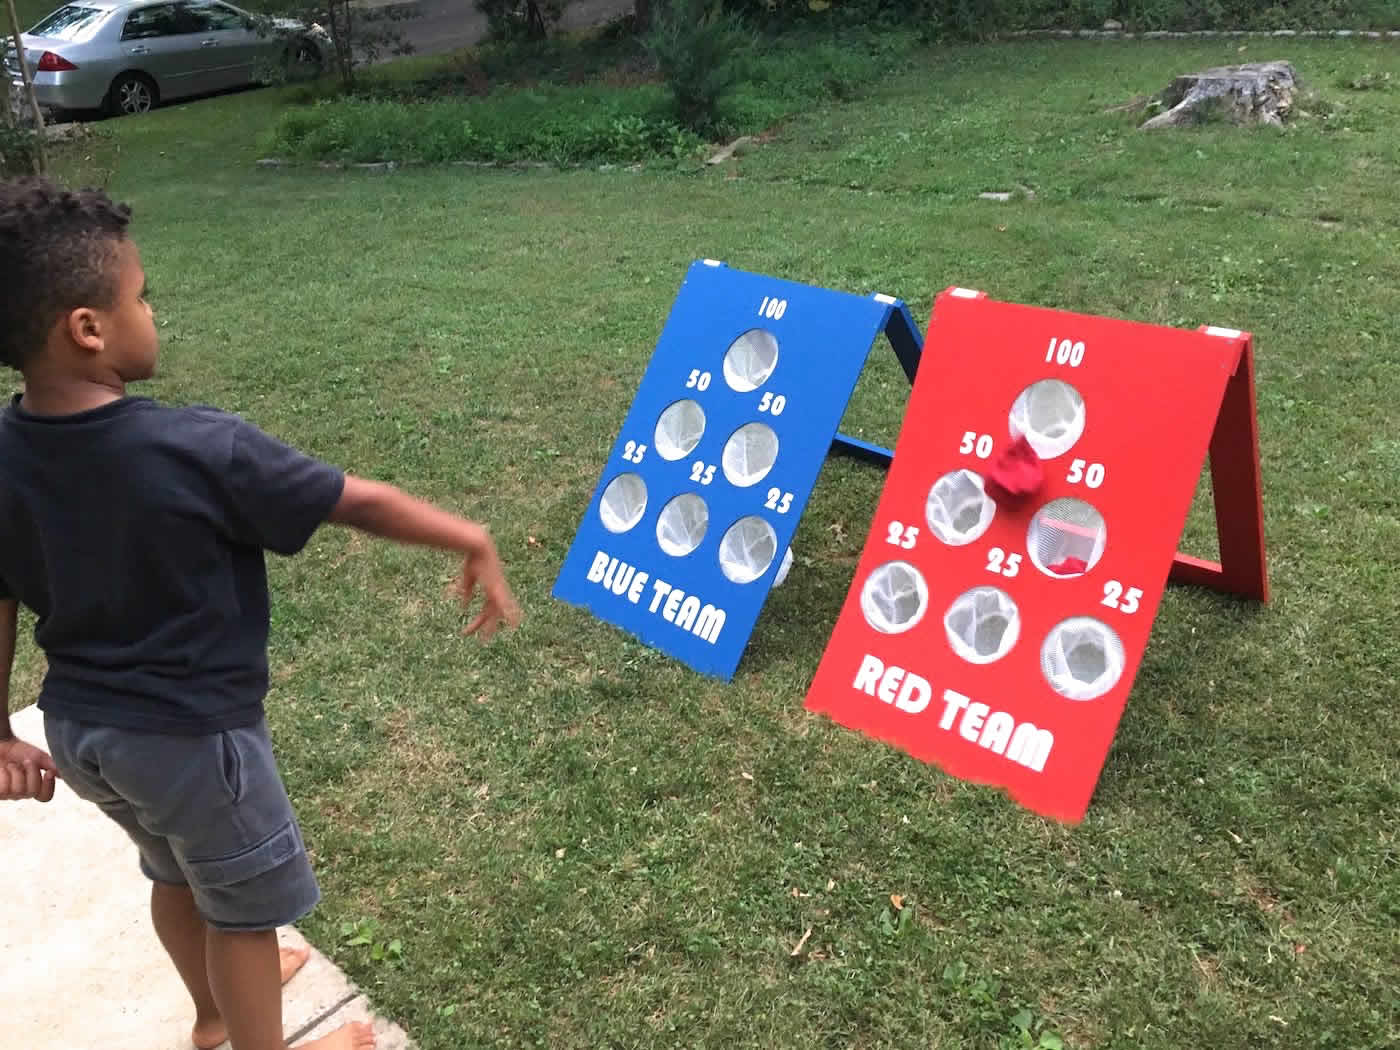 Backyard Bean Bag Toss Game